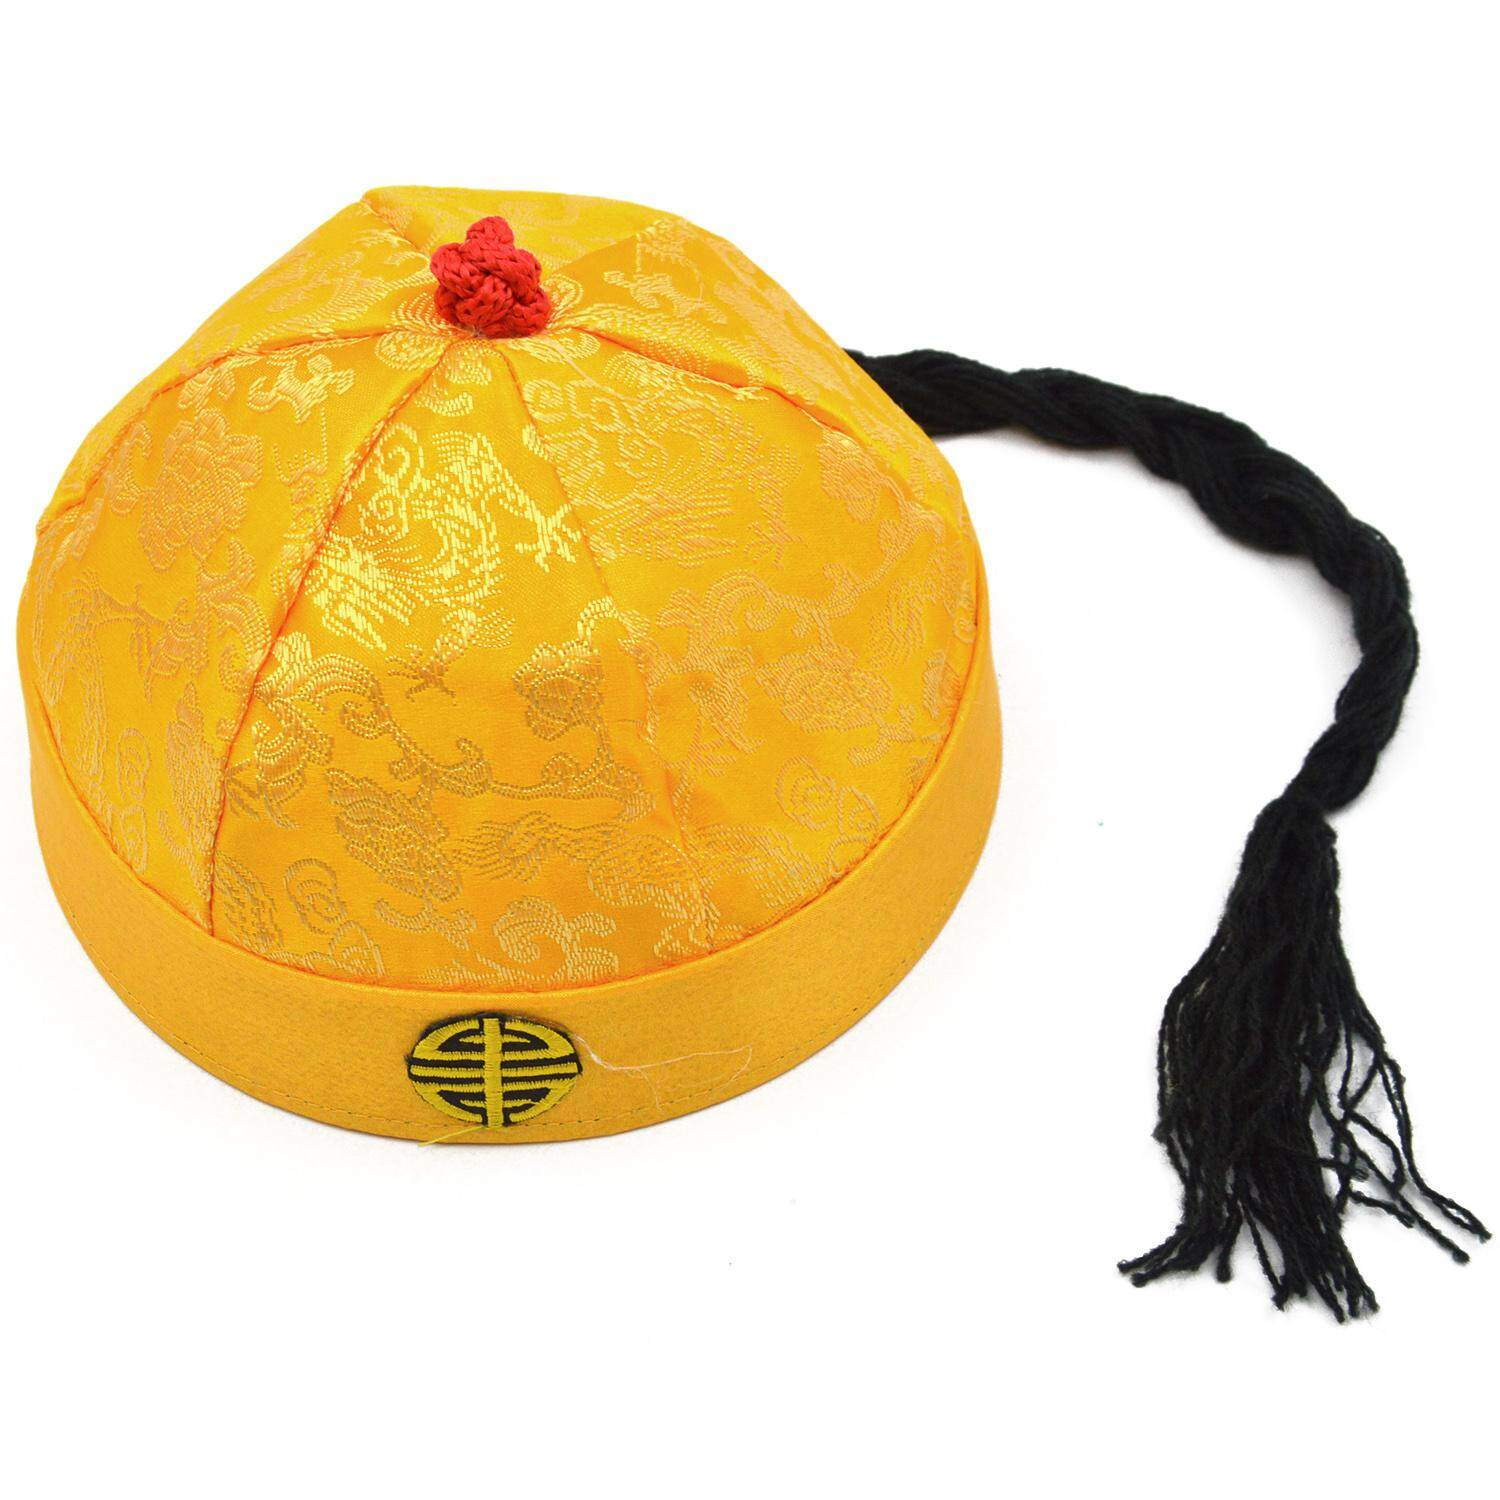 49cd5651a97 Kids Traditional Chinese Style Qing Dynasty Emperor Man Cap Hat with Long  Braid Ancient Costume Accessory